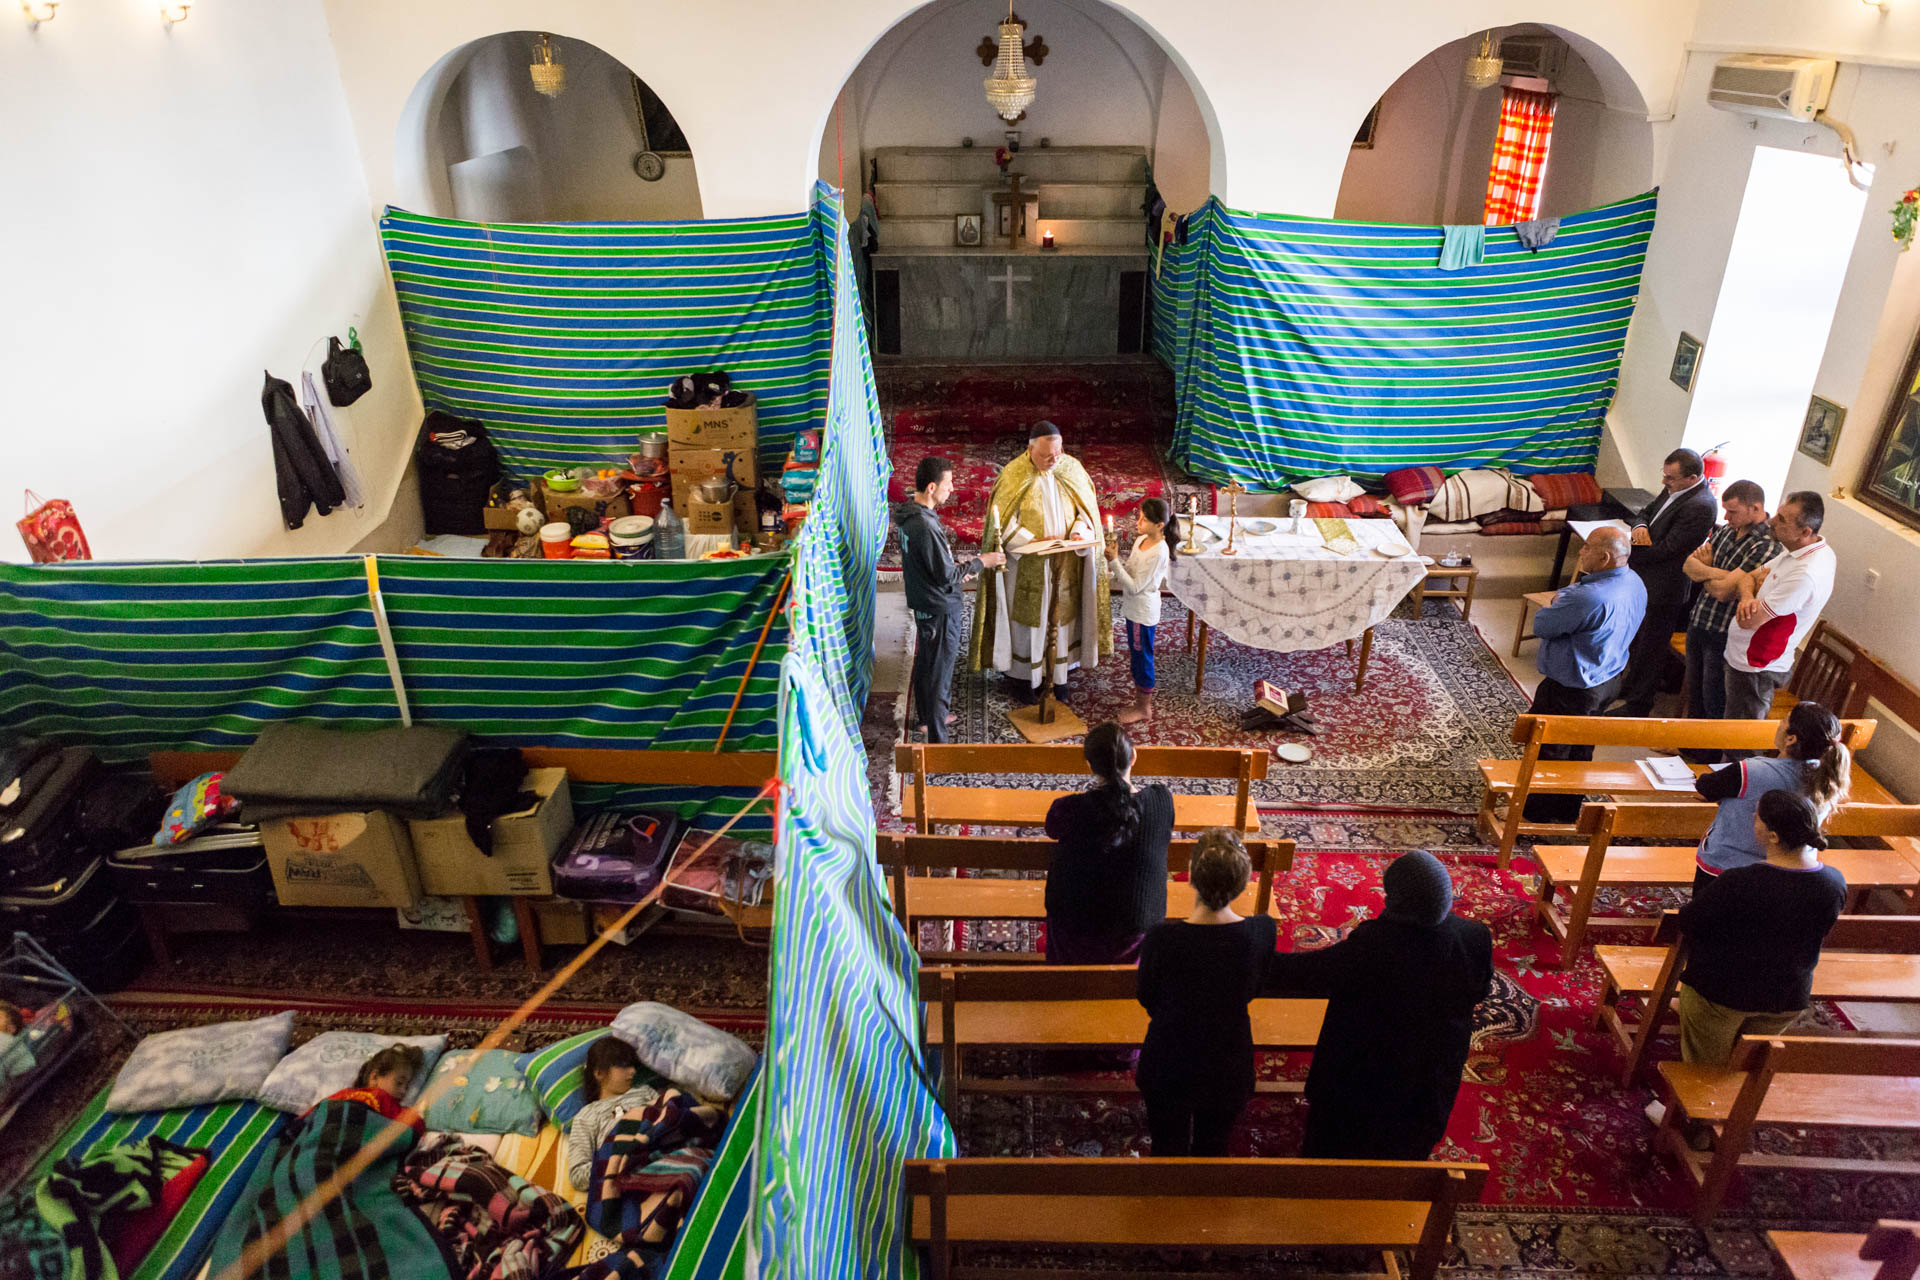 Despite the situation, the church still serves as a sacred place. With four families living in the church, separated by panels of fabric, Father Jens holds a service on Sunday morning.